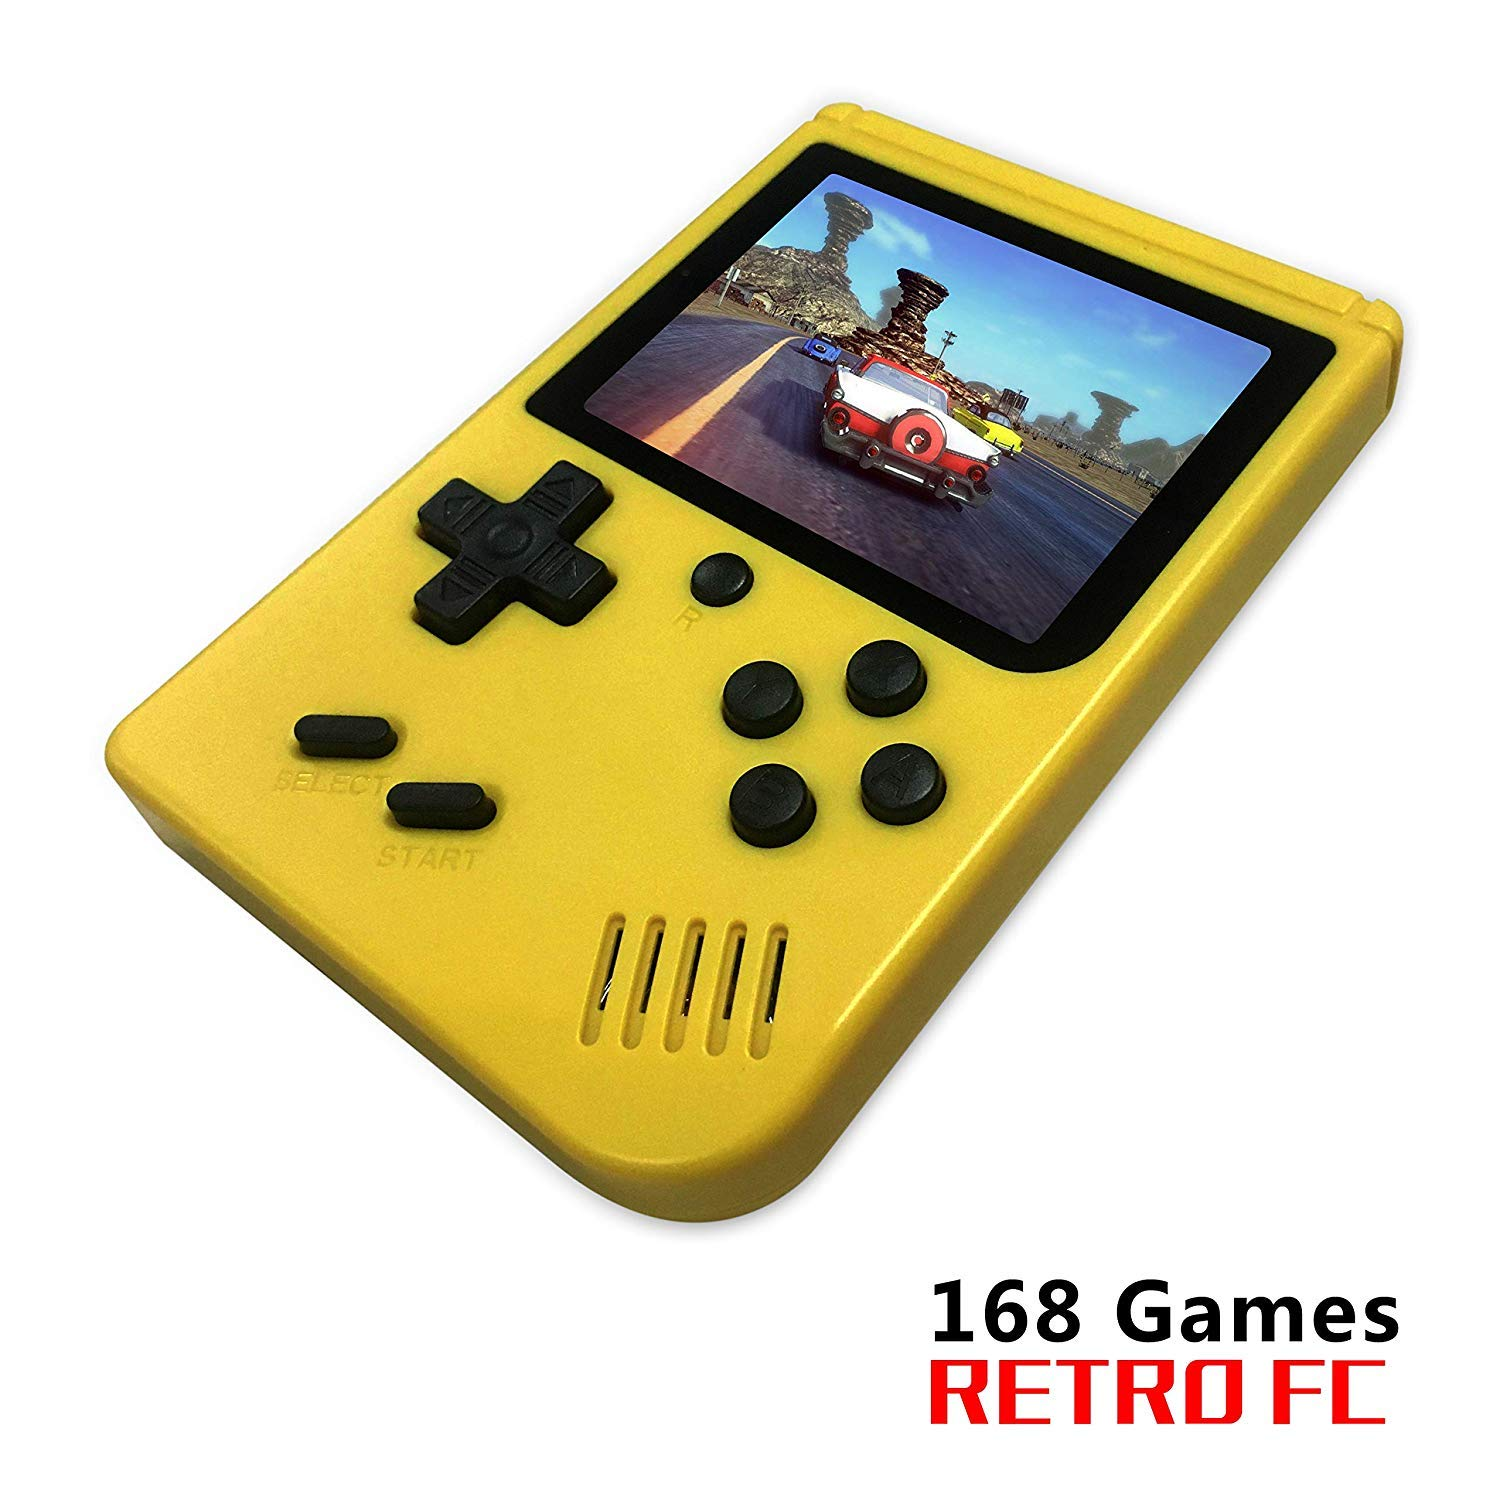 FLYFISH Handheld Game Console, Retro FC Game Console 3 Inch 168 Classic Games , Birthday Present for Children -Yellow by FLYFISH (Image #1)